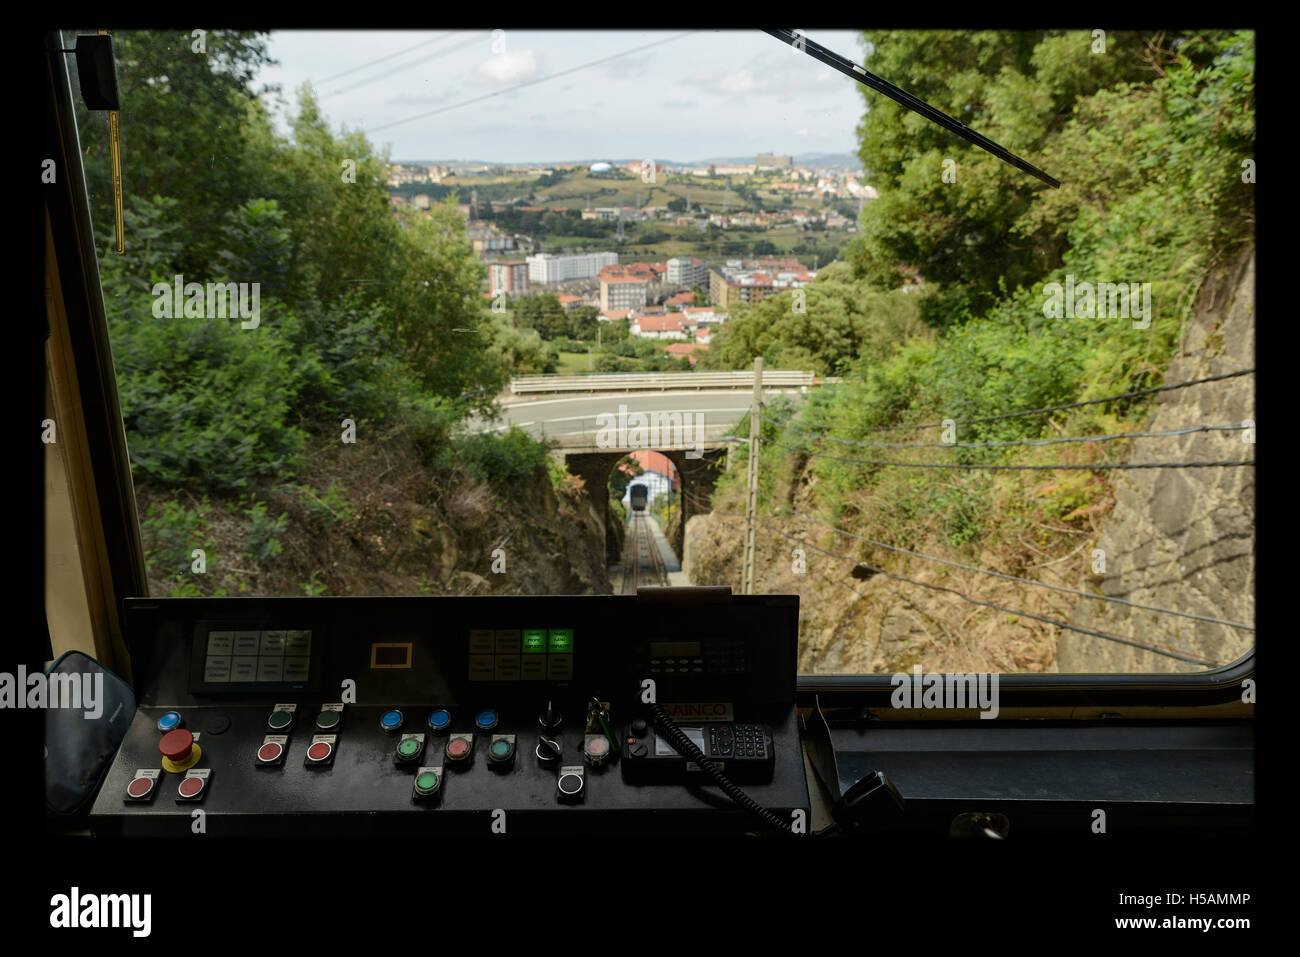 The funicular Larreineta, in the Valley of Trapaga, Trapagaran, Bilbao, Basque Country, Spain. - Stock Image